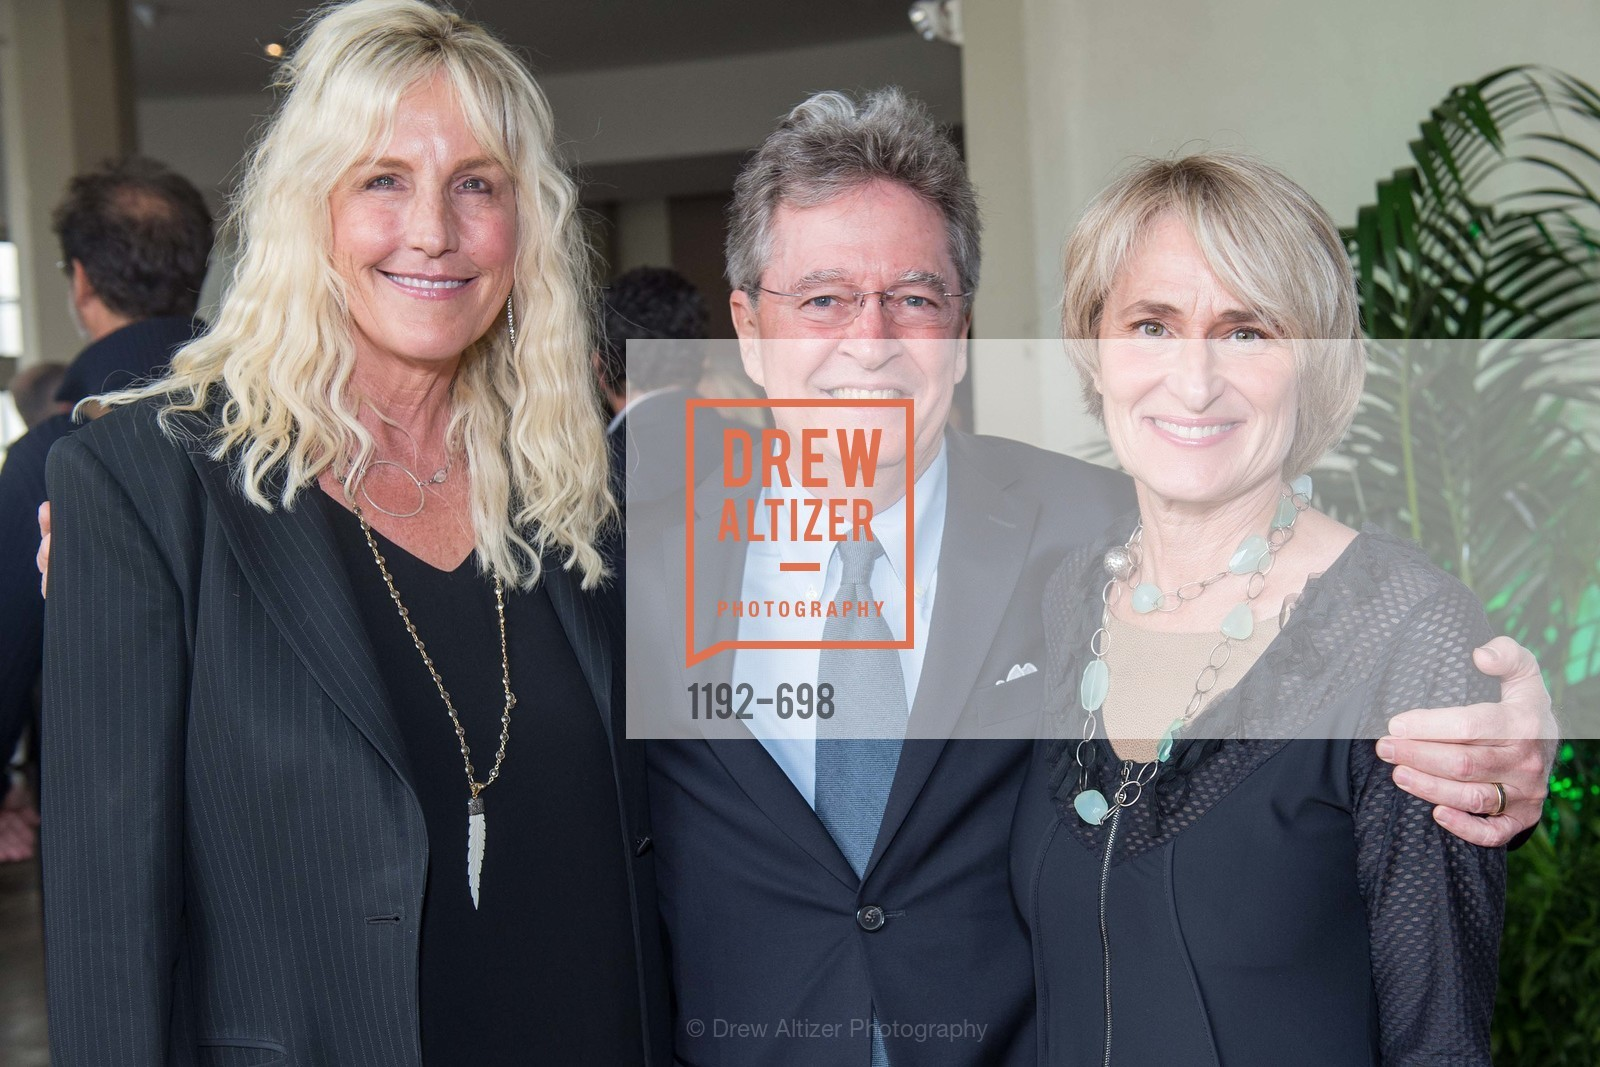 Erin Brockovich, Ken Cook, Deb Callahan, EWG's 6th Annual Earth Dinner, US, May 6th, 2015,Drew Altizer, Drew Altizer Photography, full-service agency, private events, San Francisco photographer, photographer california